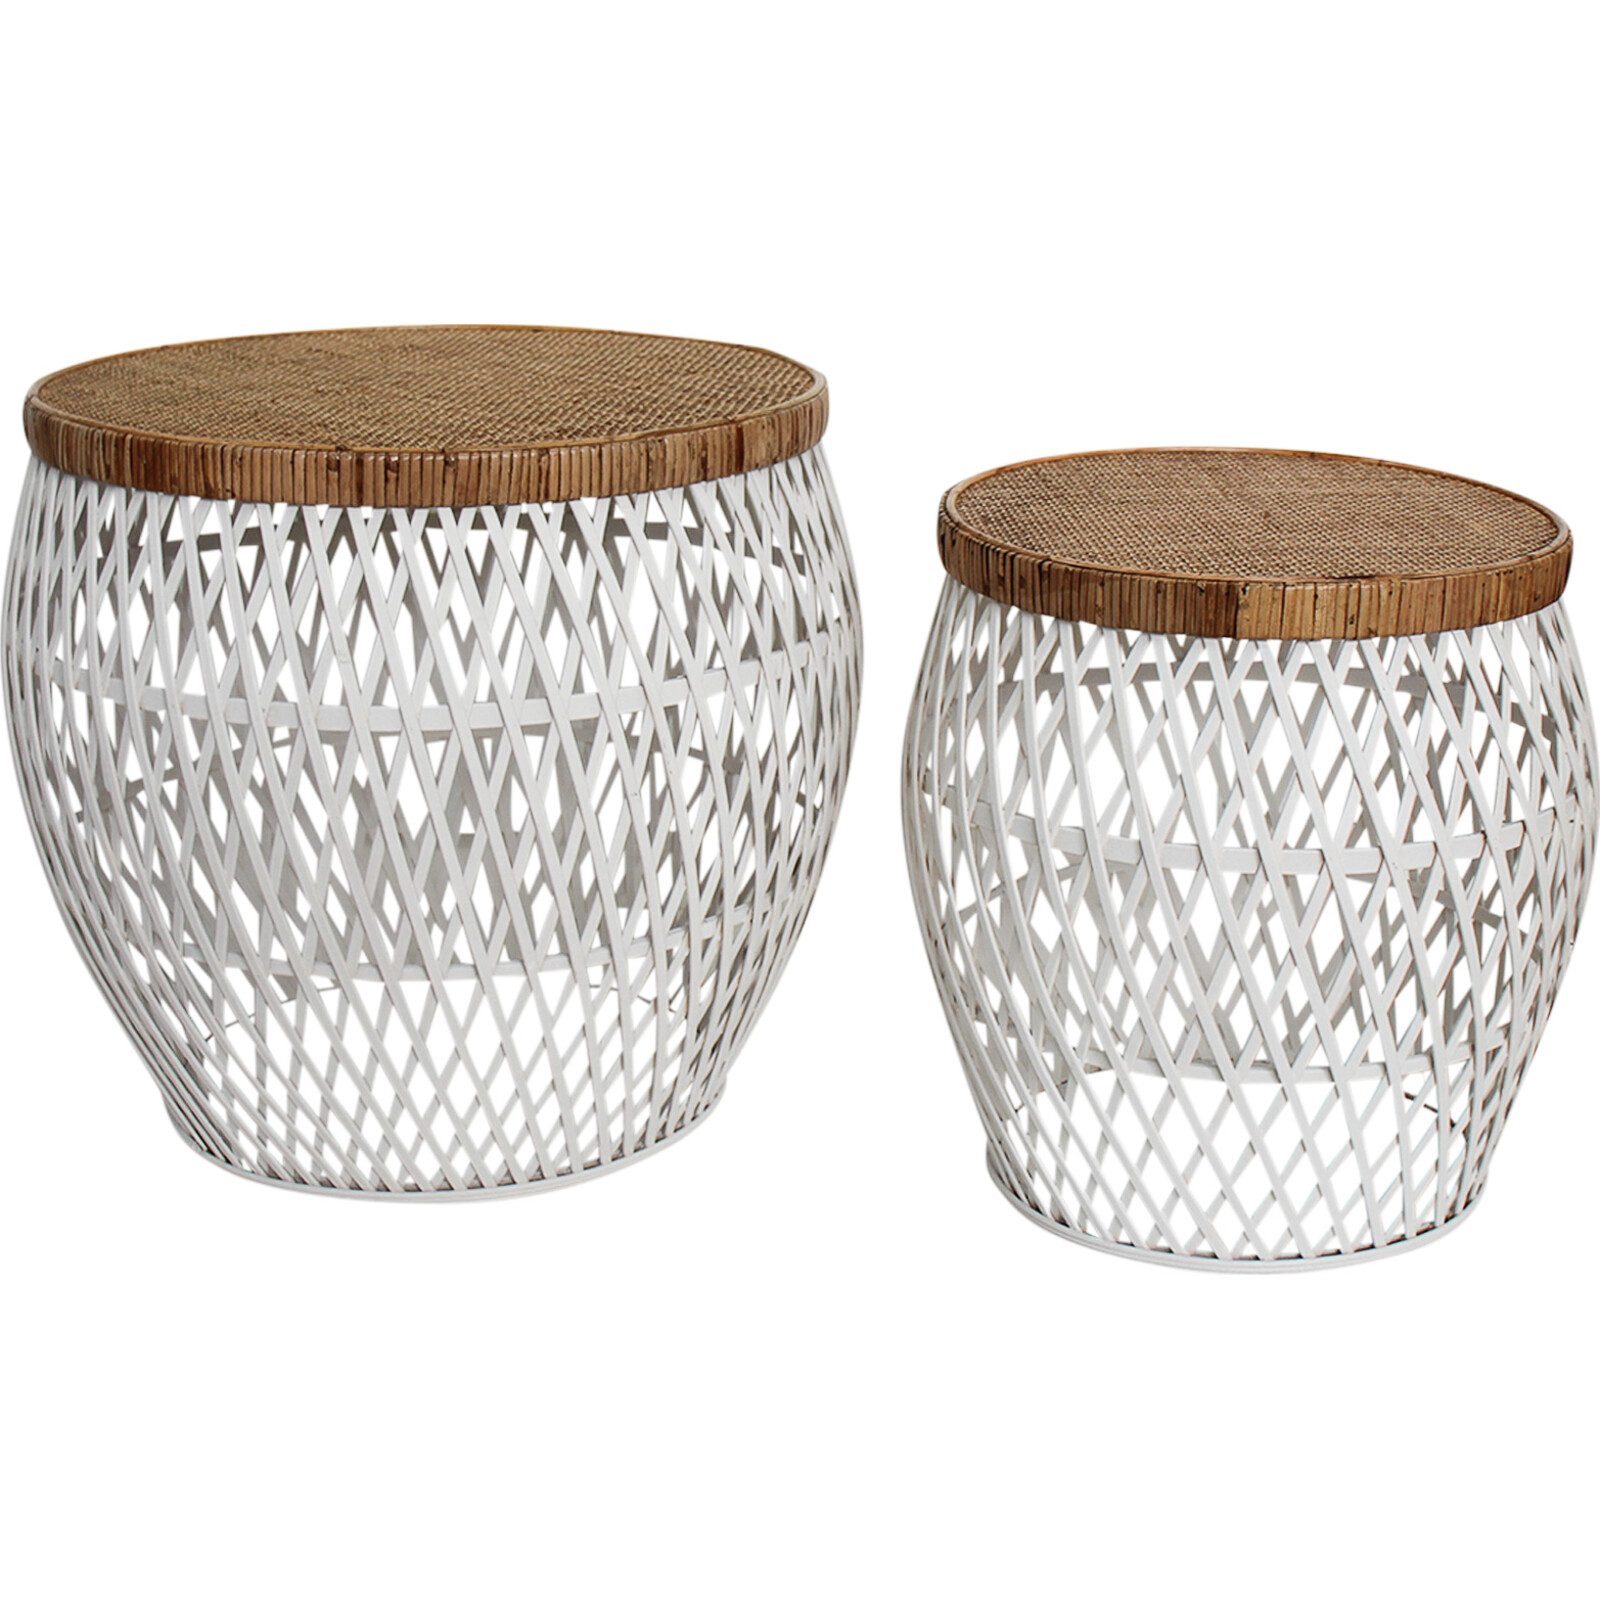 Tables S/2 Portland Rattan Nat/Wh